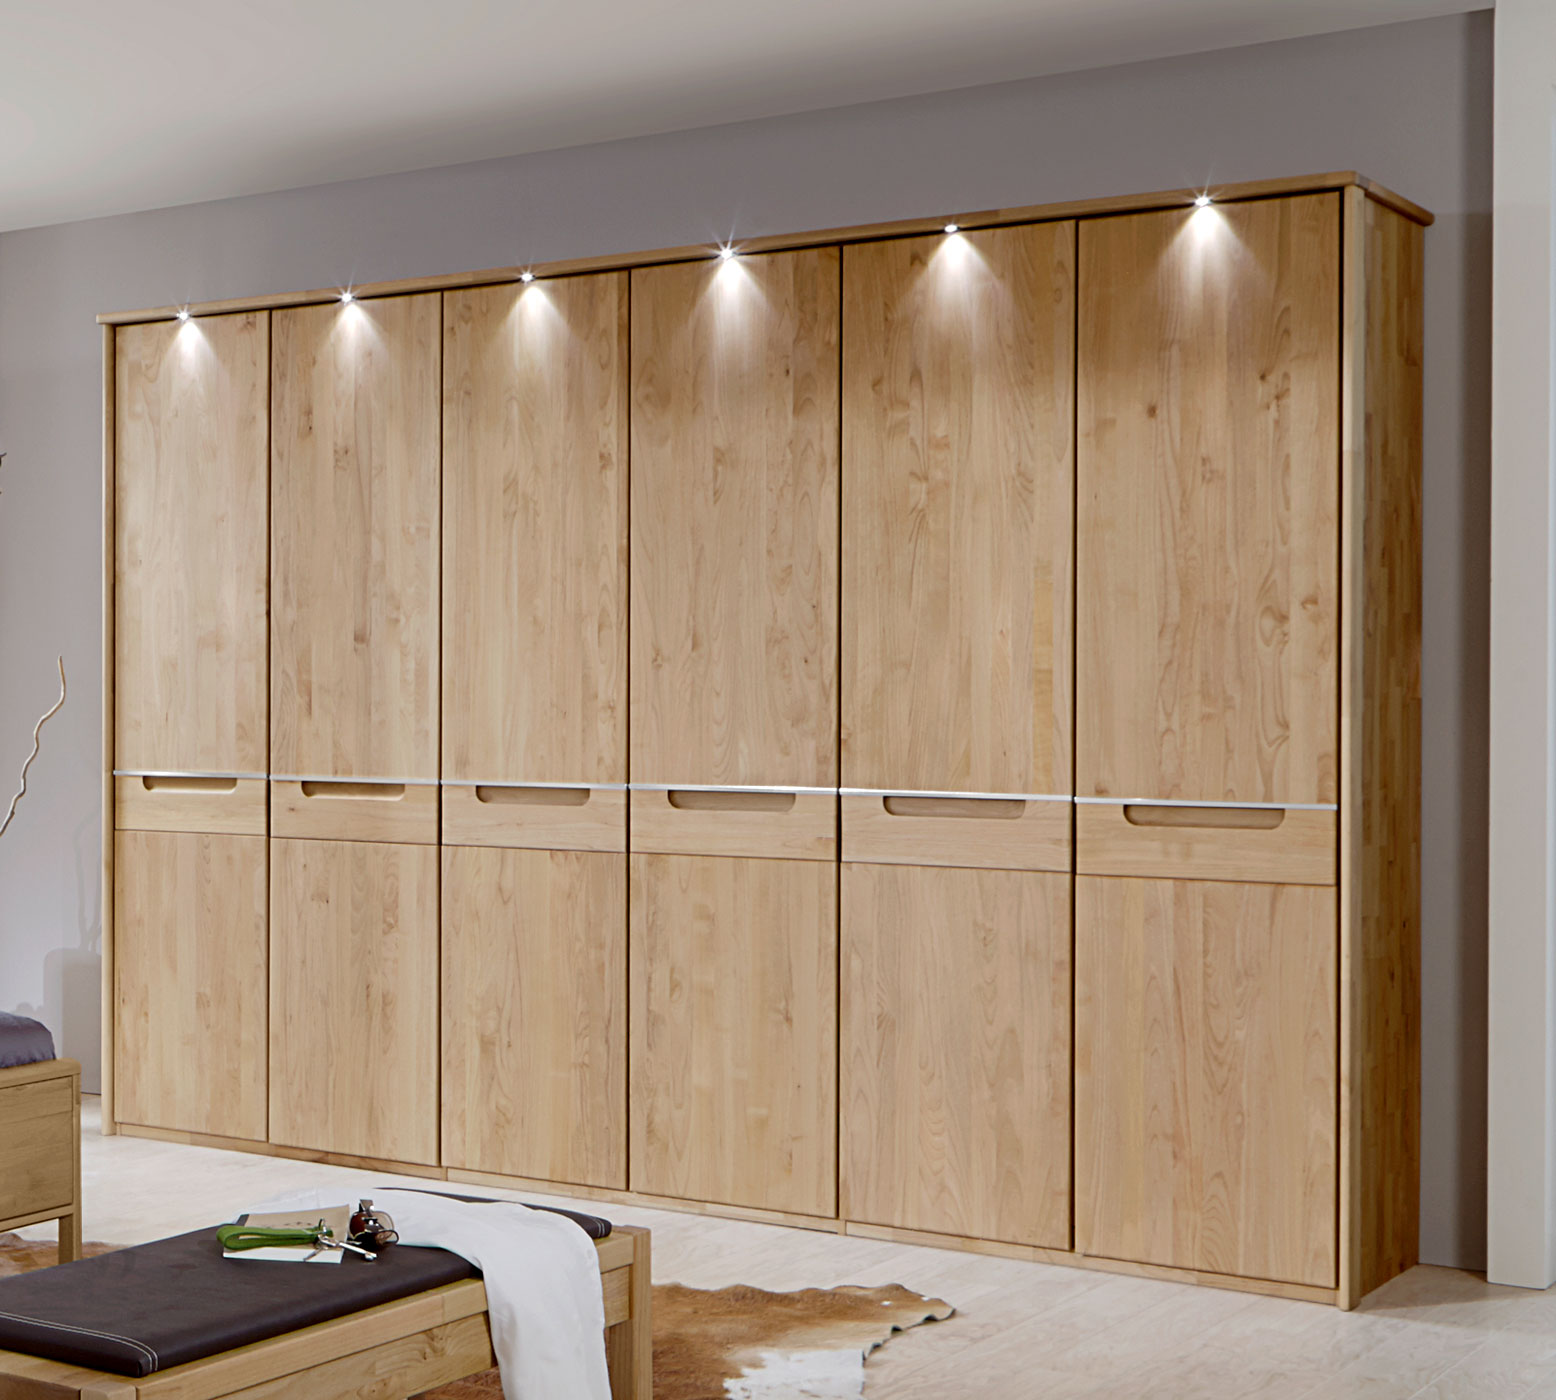 kleiderschrank beleuchtung led begehbarer kleiderschrank. Black Bedroom Furniture Sets. Home Design Ideas